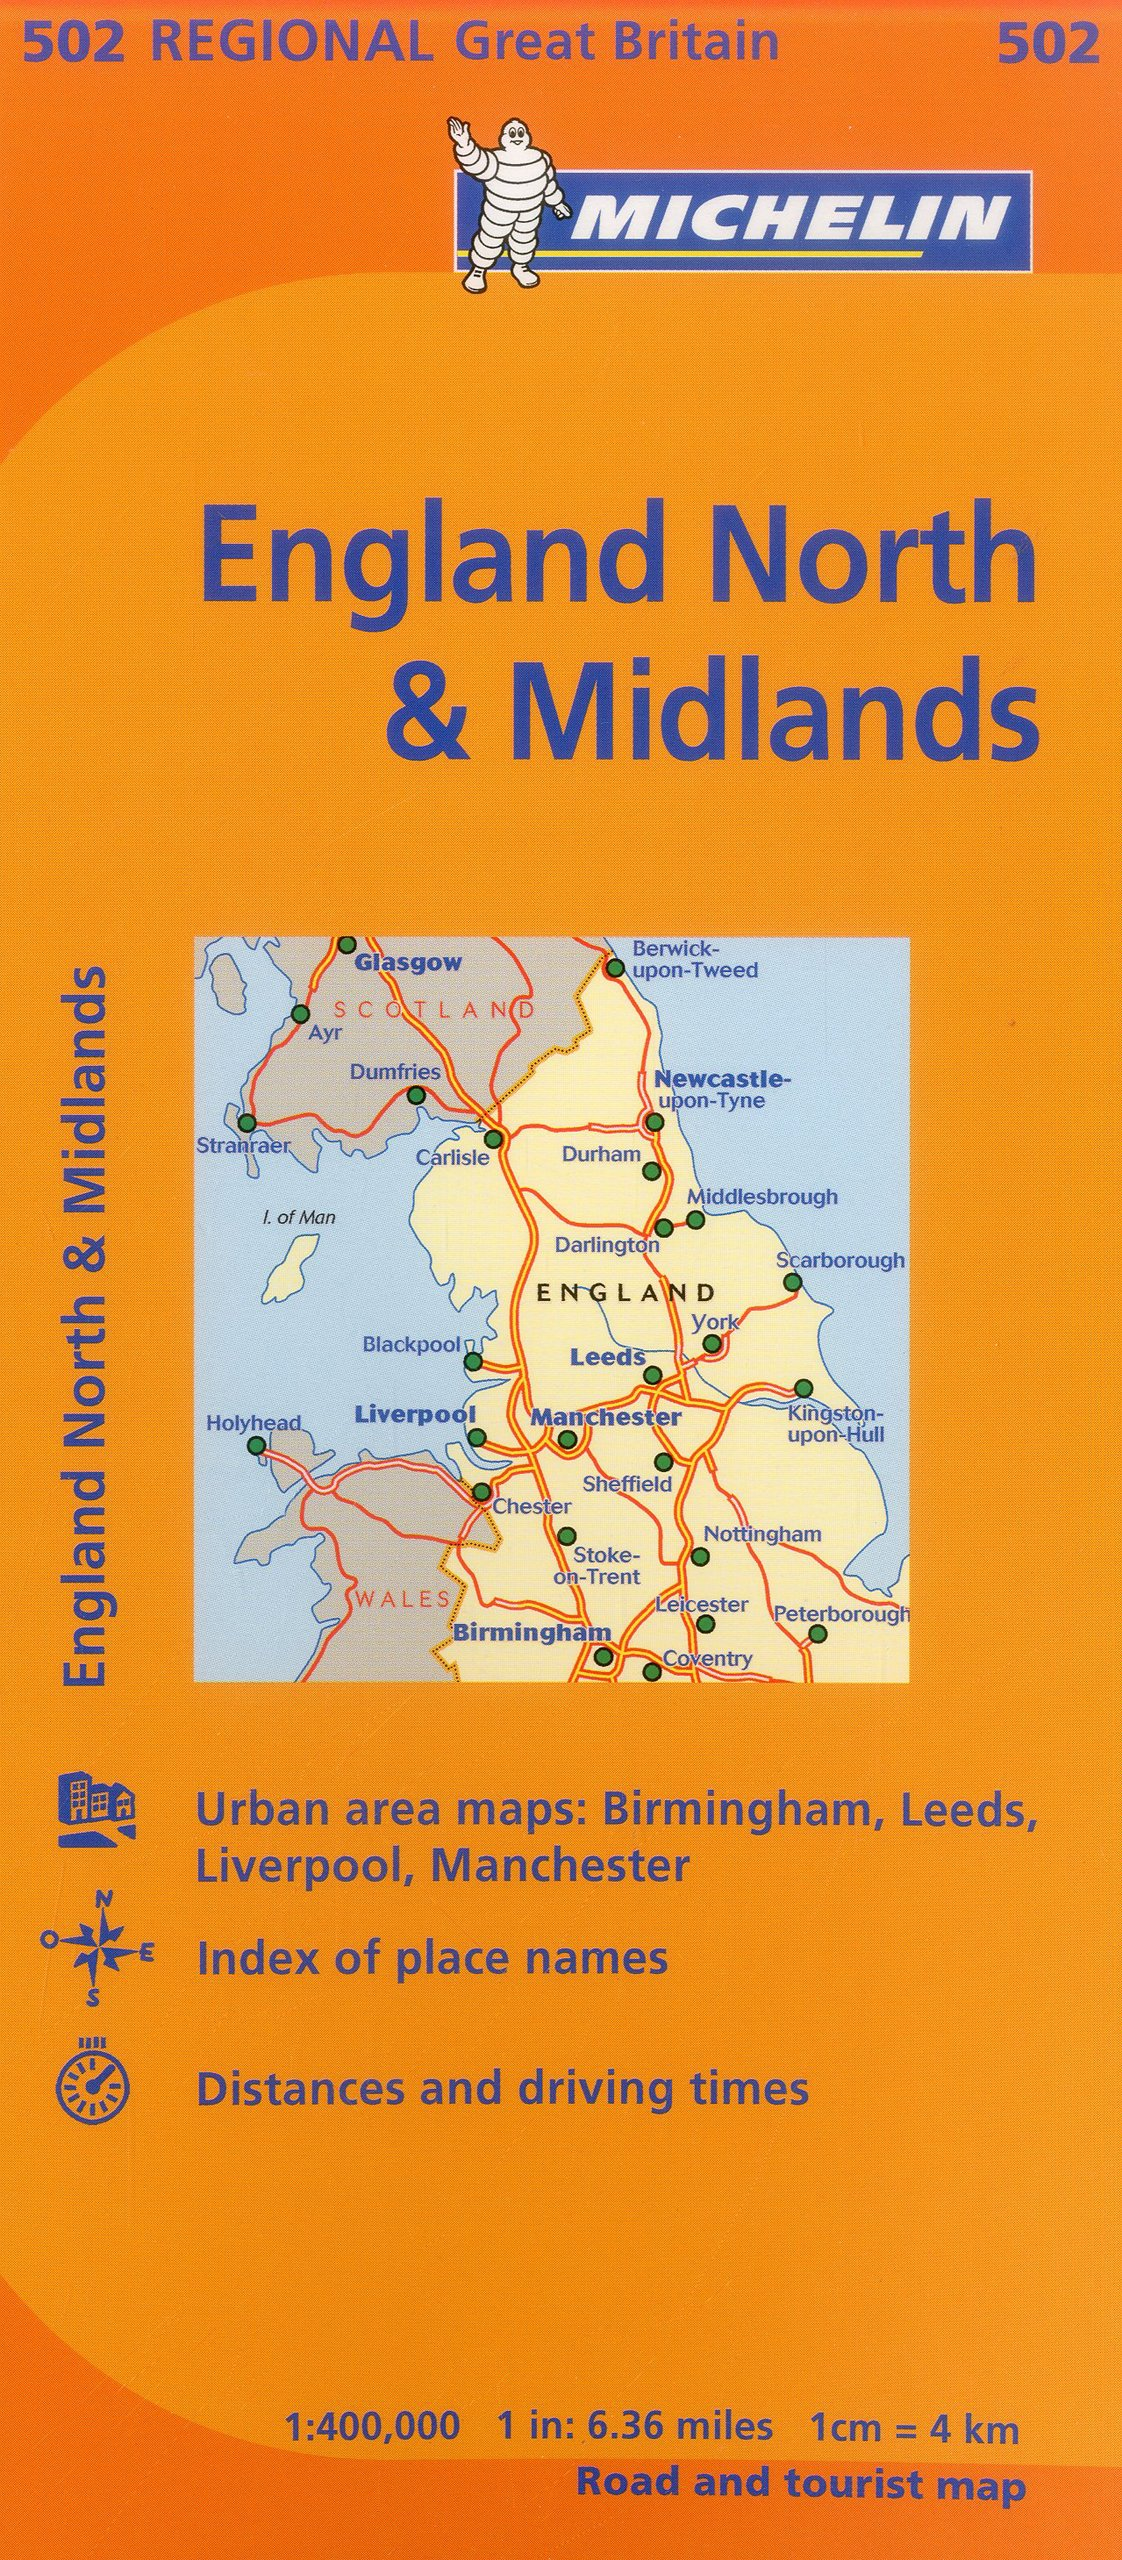 Map Of England Midlands.Michelin Map Great Britain England North The Midlands 502 Maps